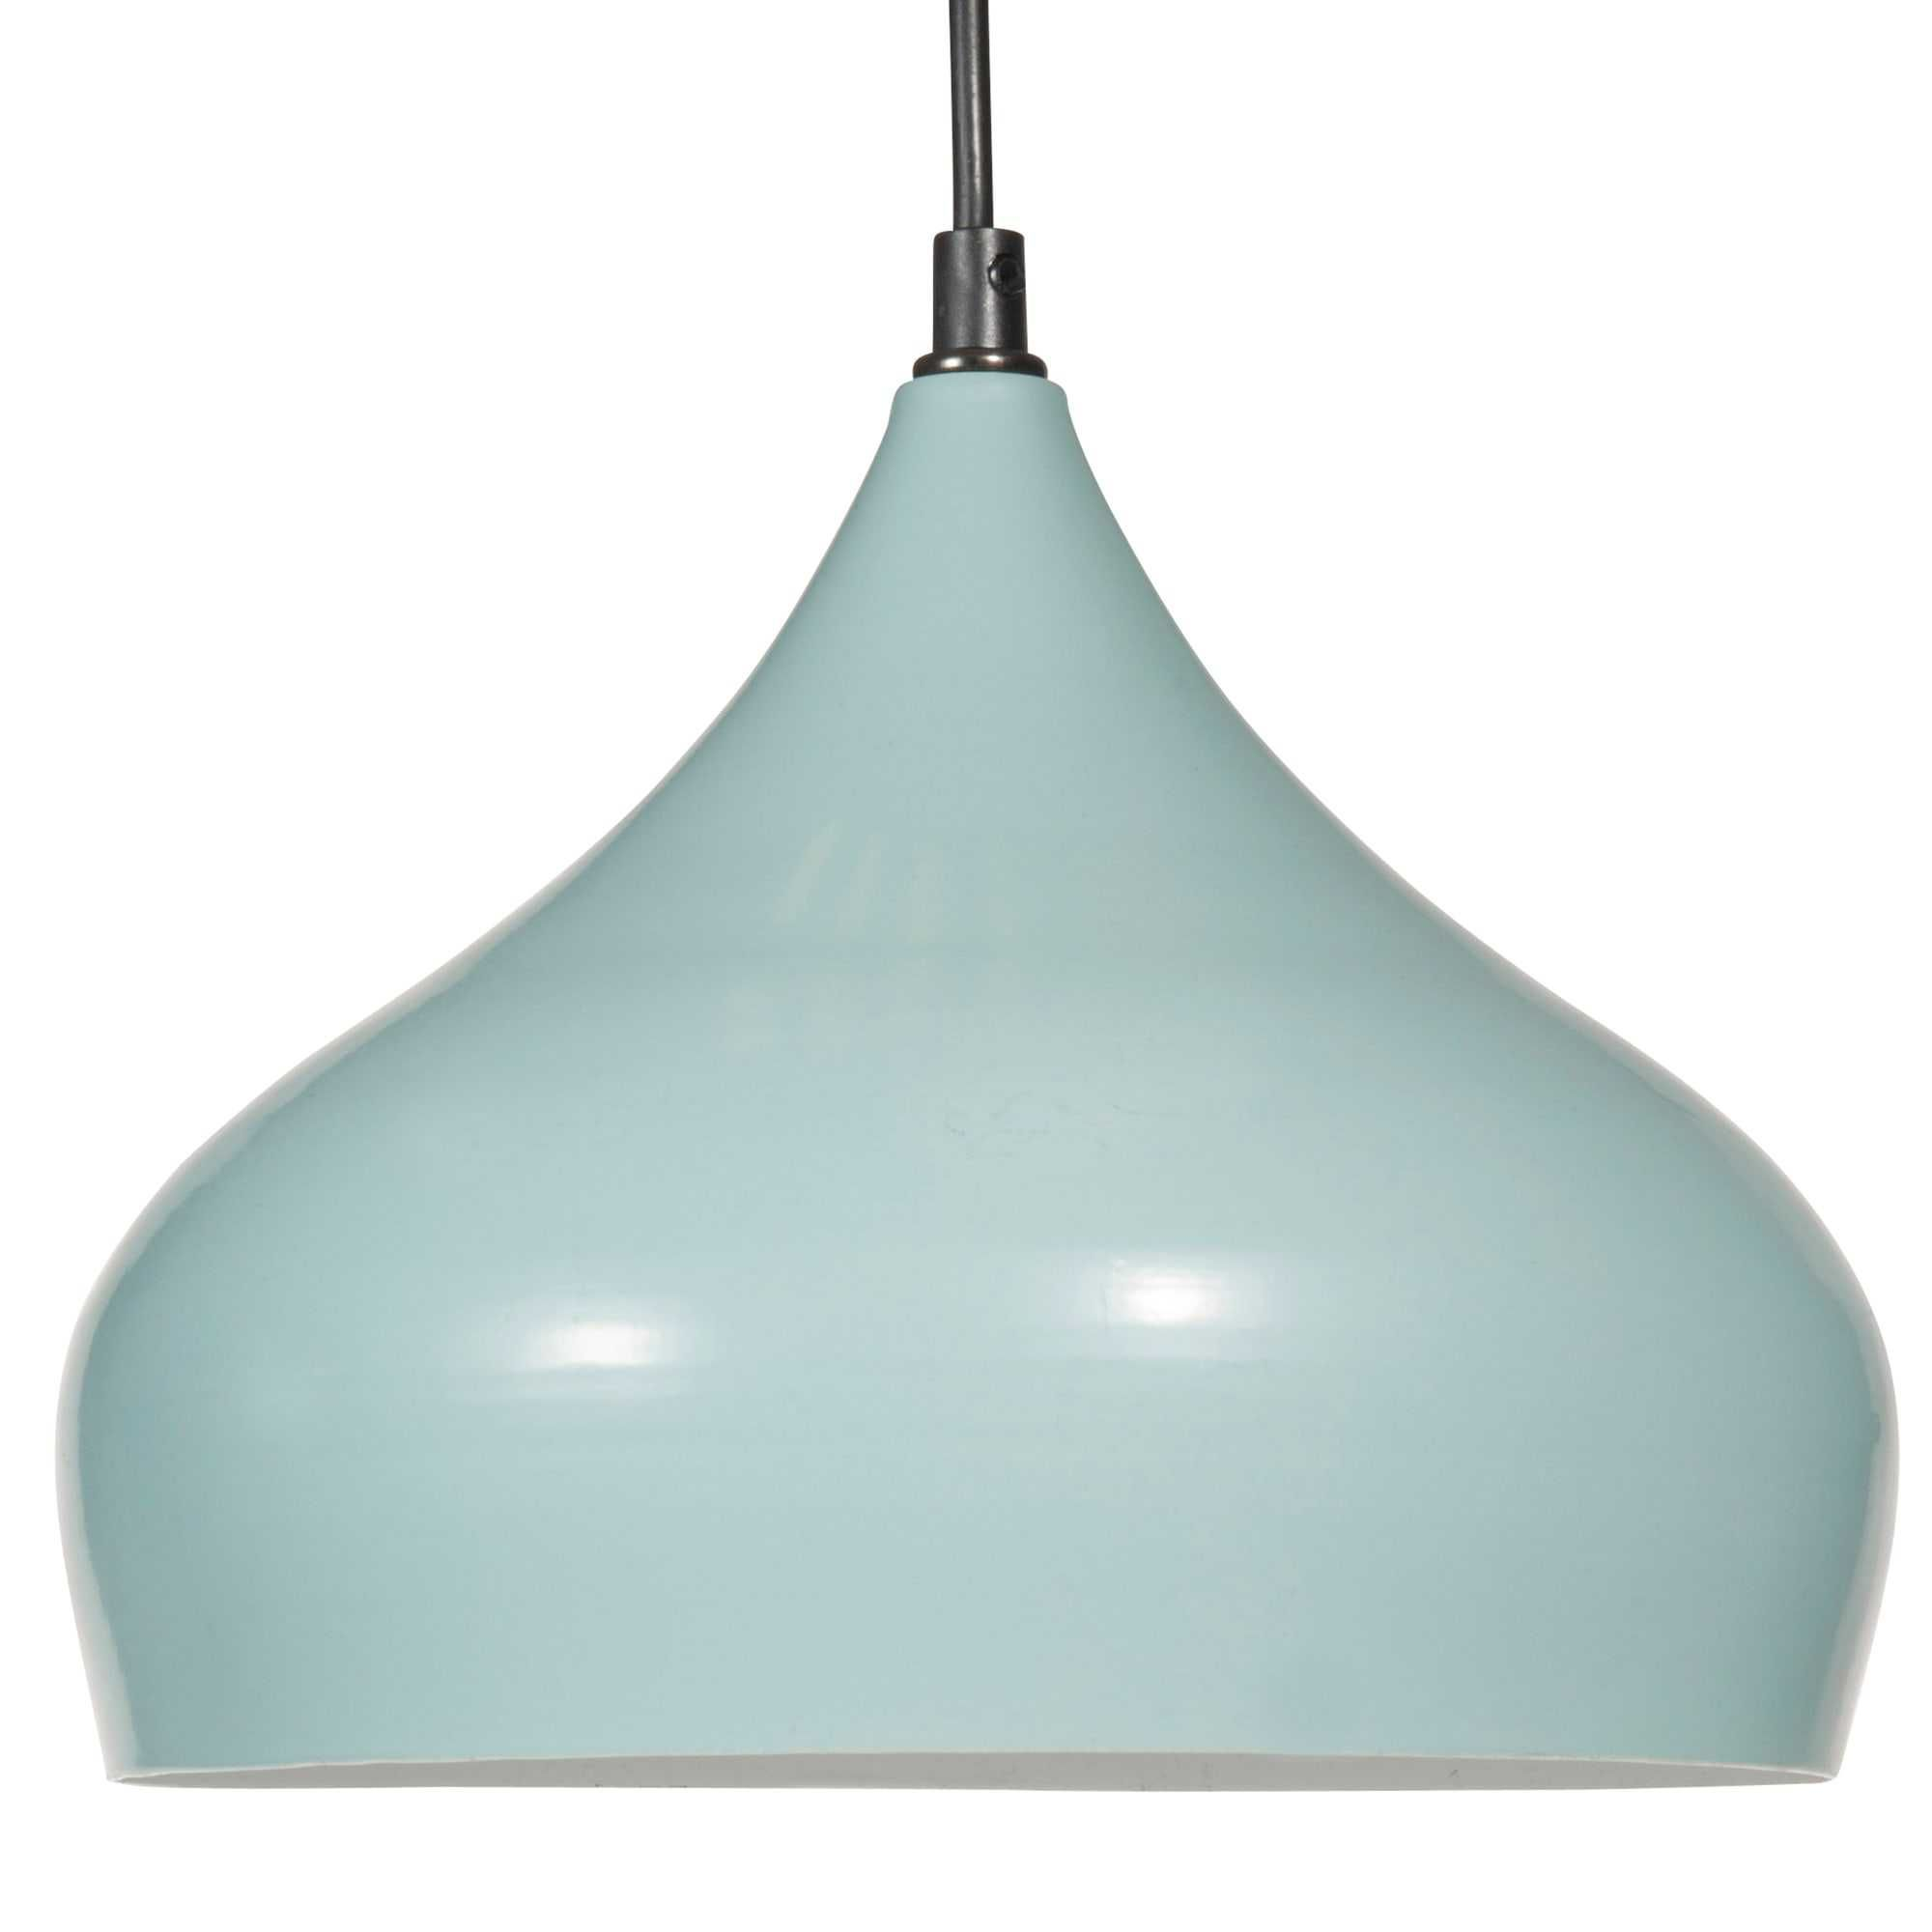 Suspension en métal bleu D 26 cm Amenagement salon